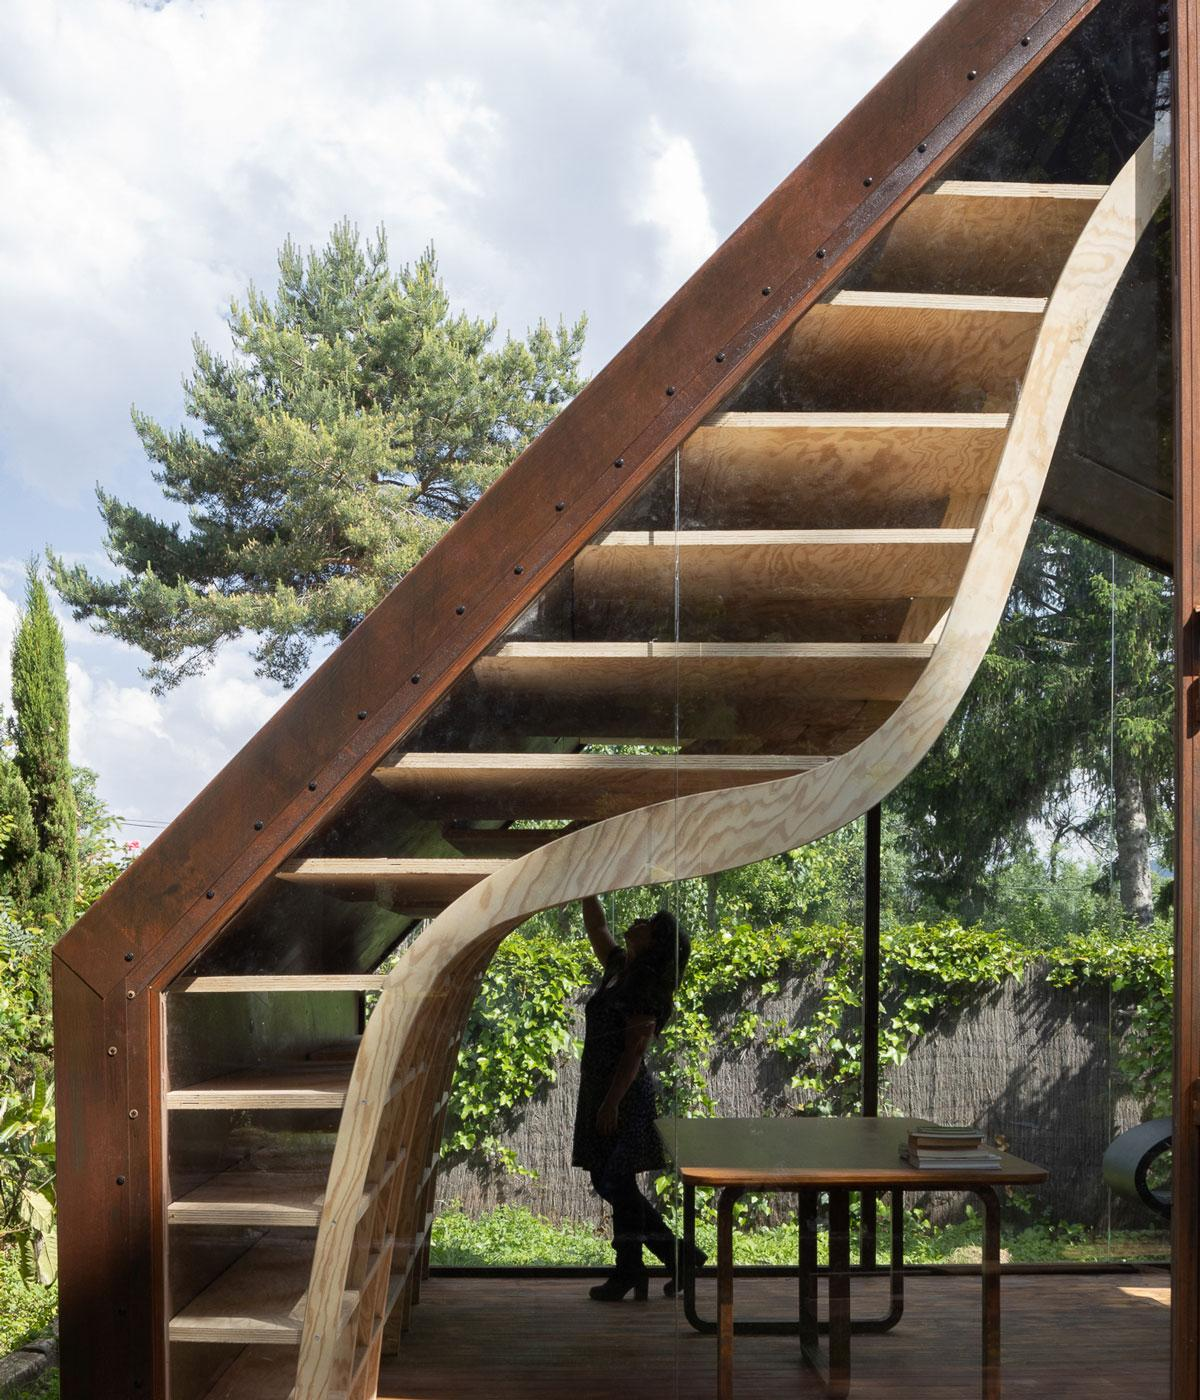 A curving wooden bookcase against glass window